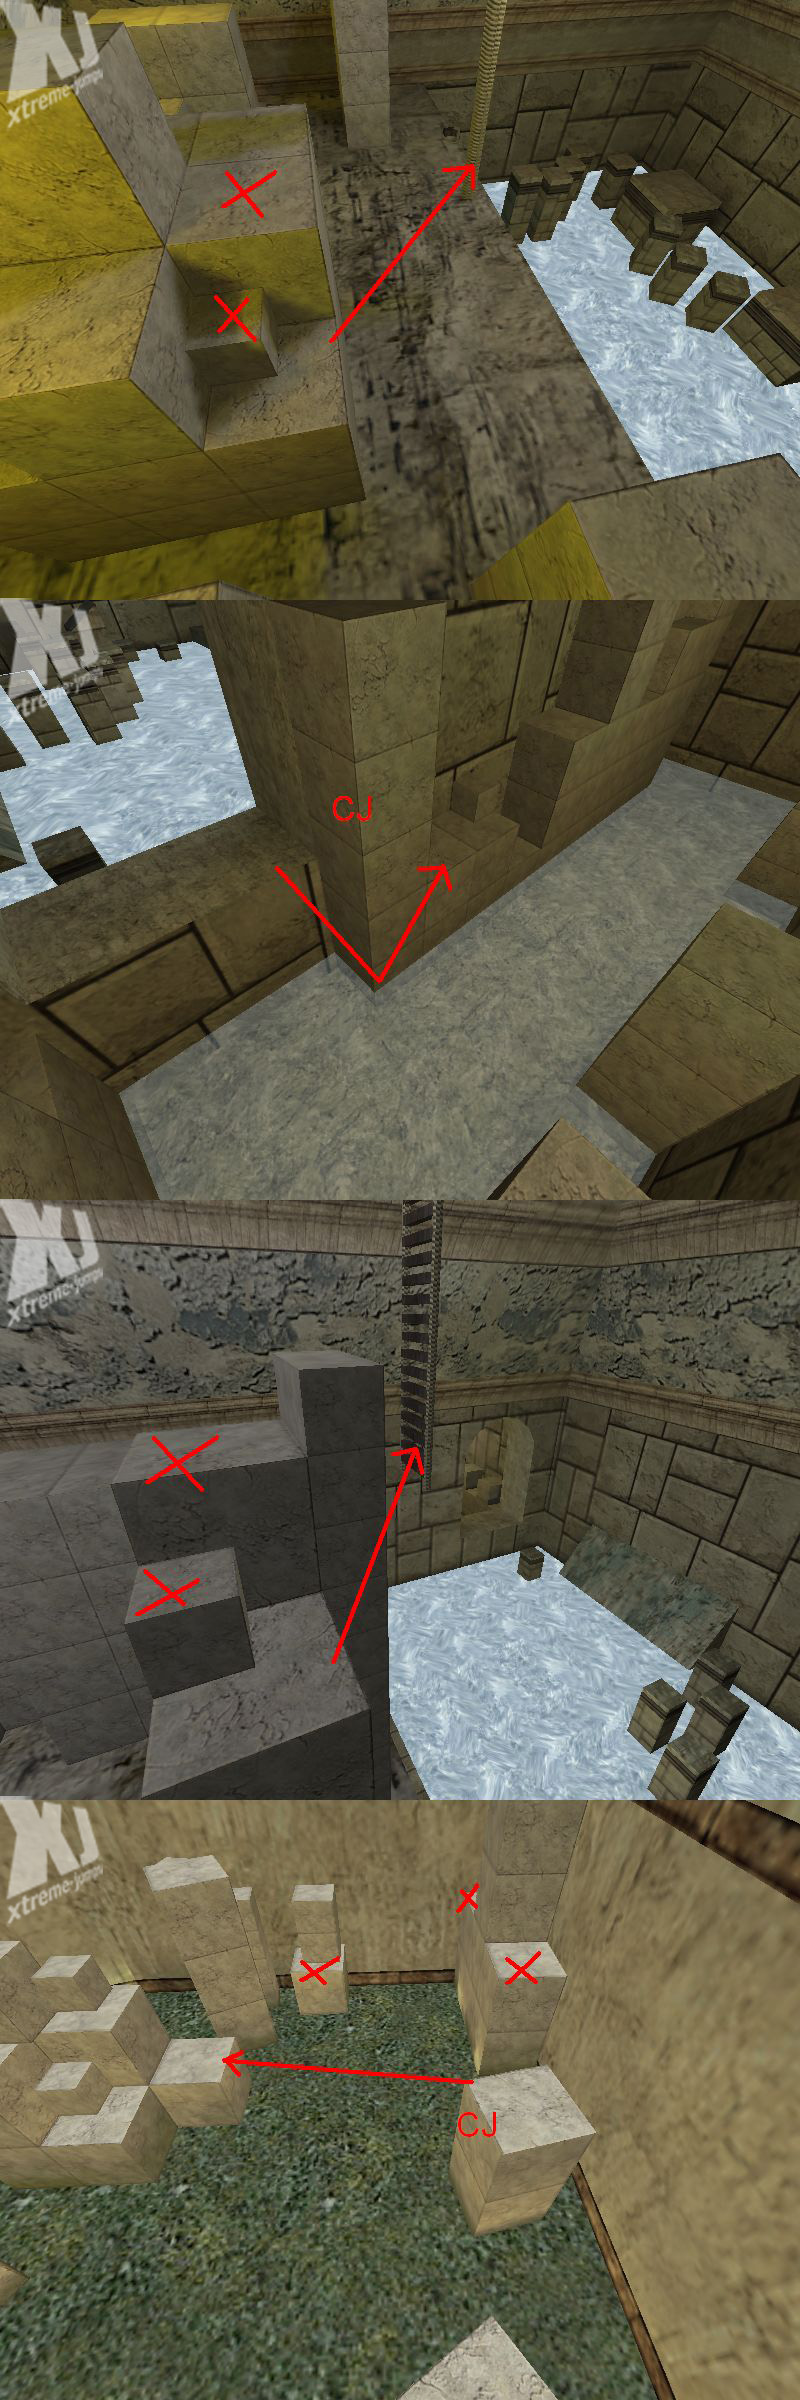 kz_kzarg_catacombsbhop shortcuts